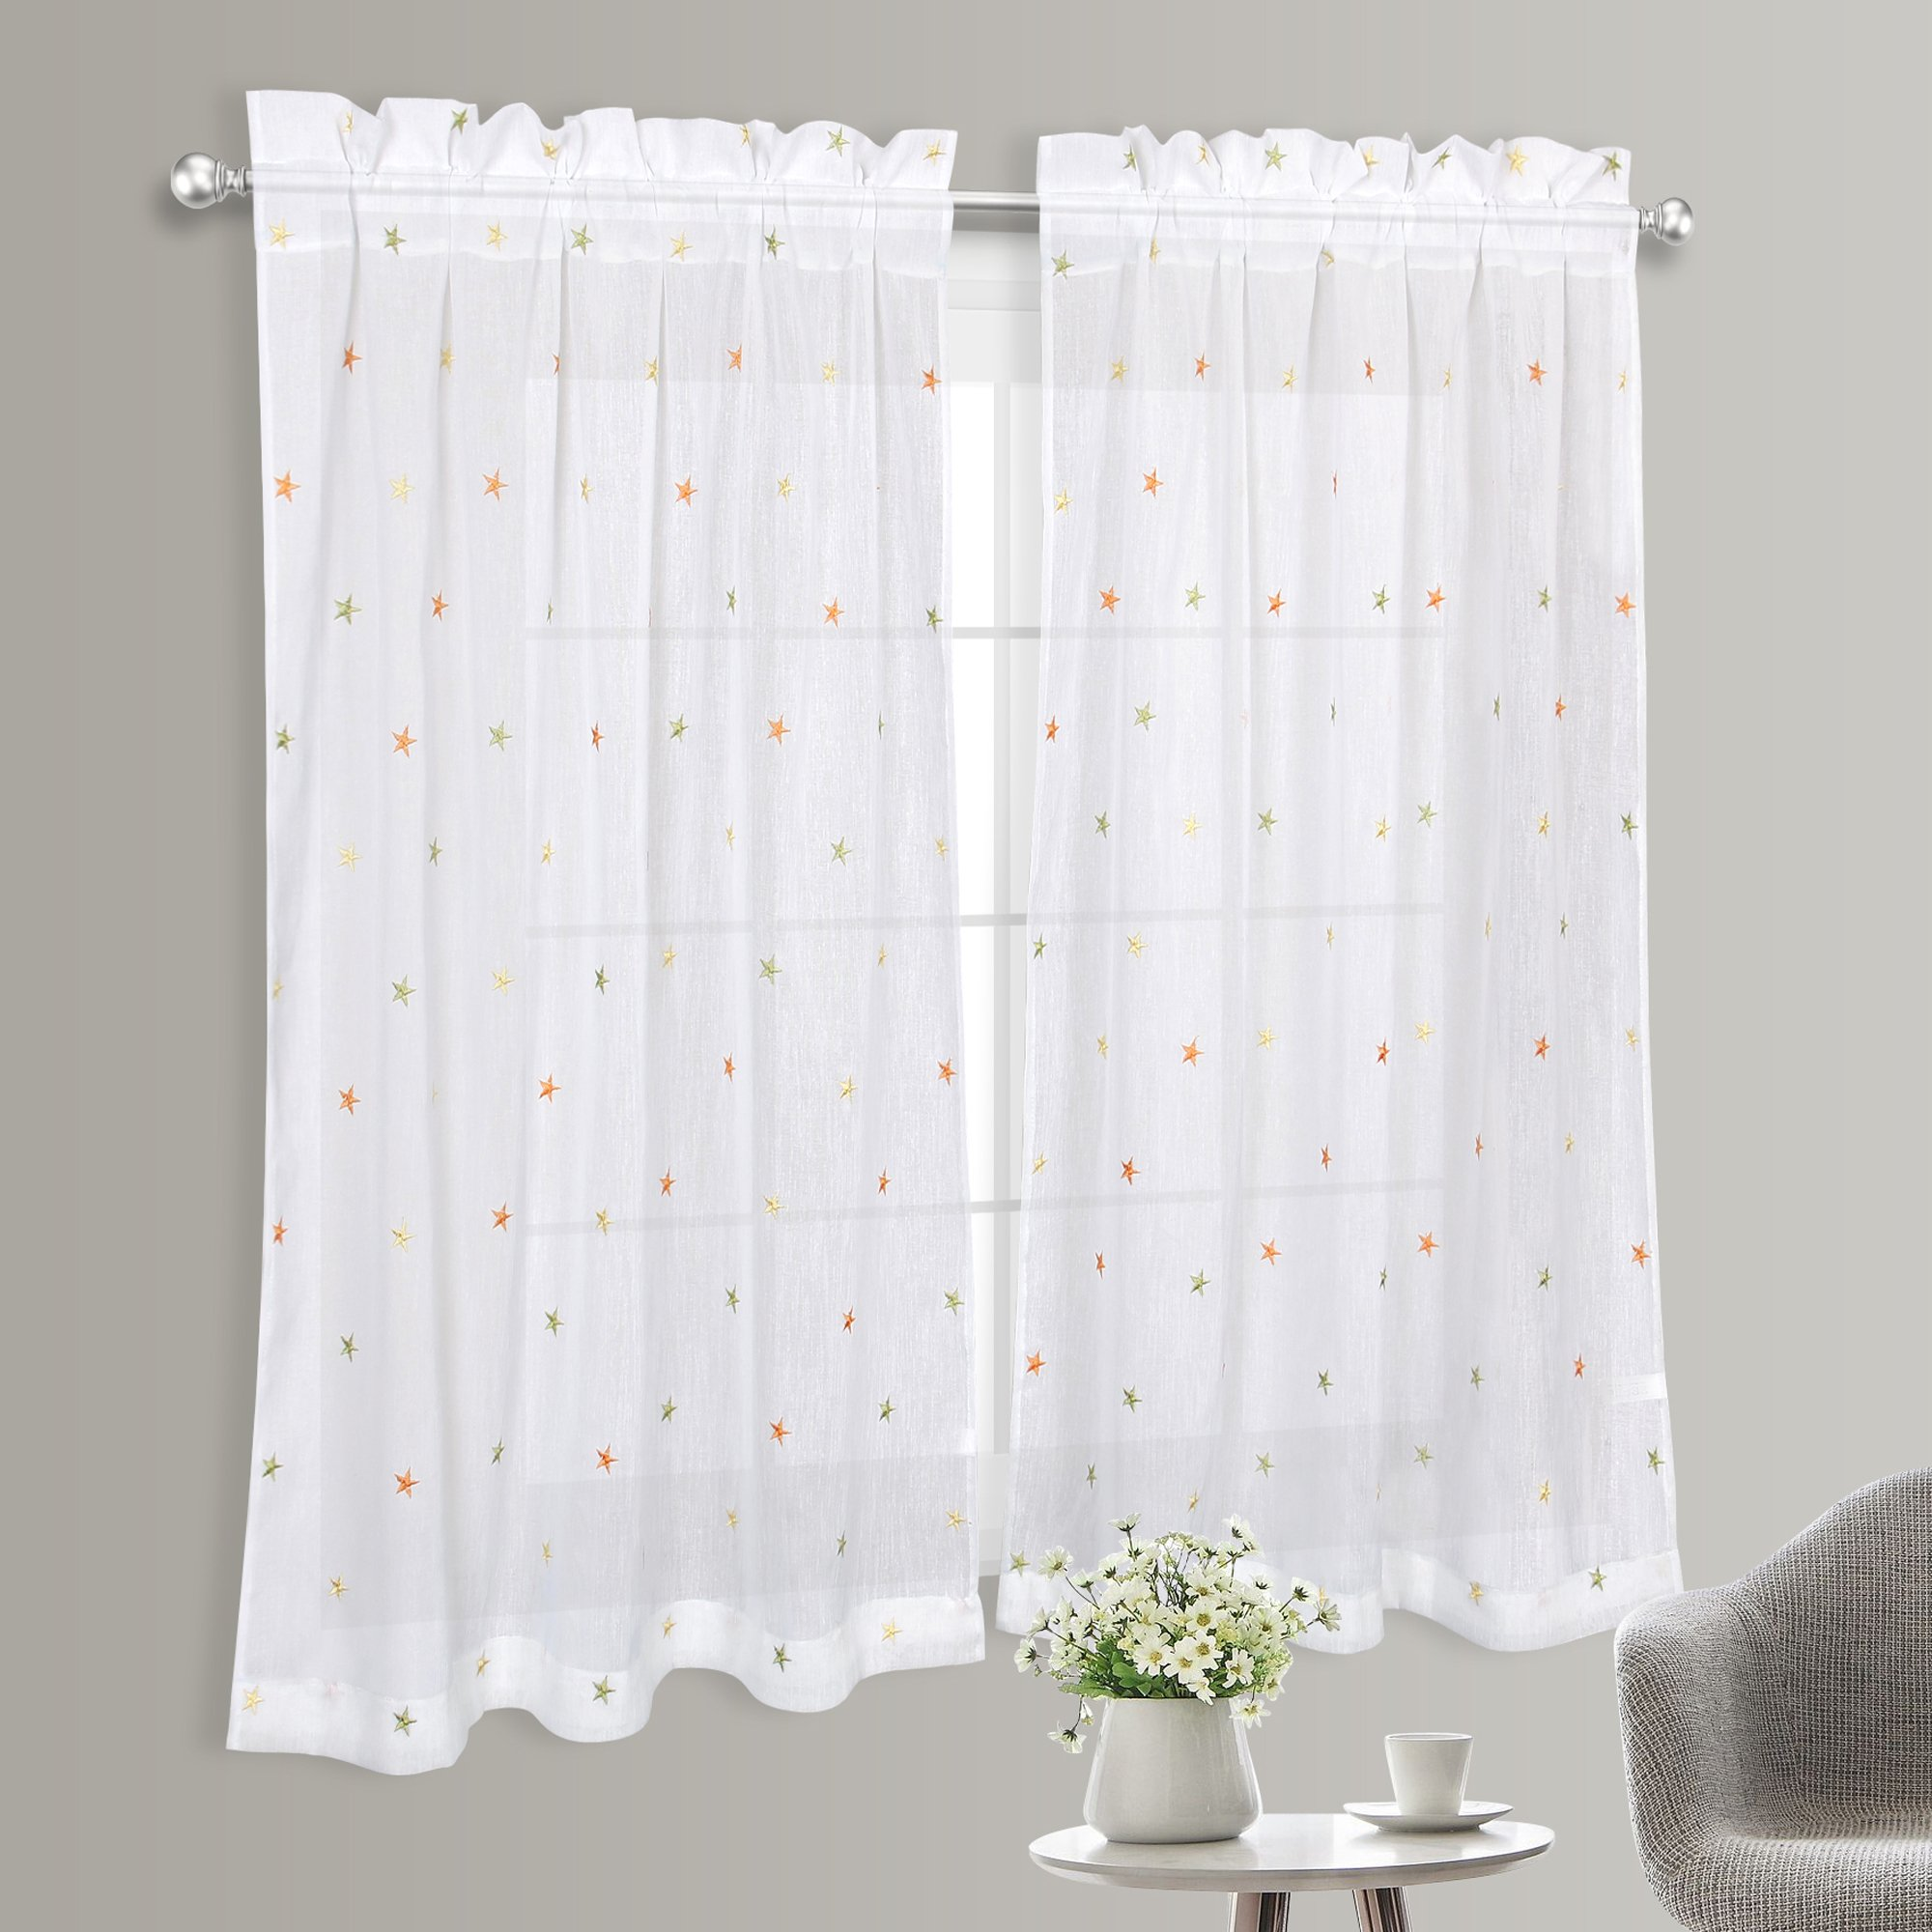 VOILYBIRD Rod Pocket Embroidered Stars Linen Textured Thick Sheer for Small Windows - Short Semi Sheer Curtains for Baby Room and Bathroom (W40 x L45, 2 Panels, Green/Yellow/Orange)